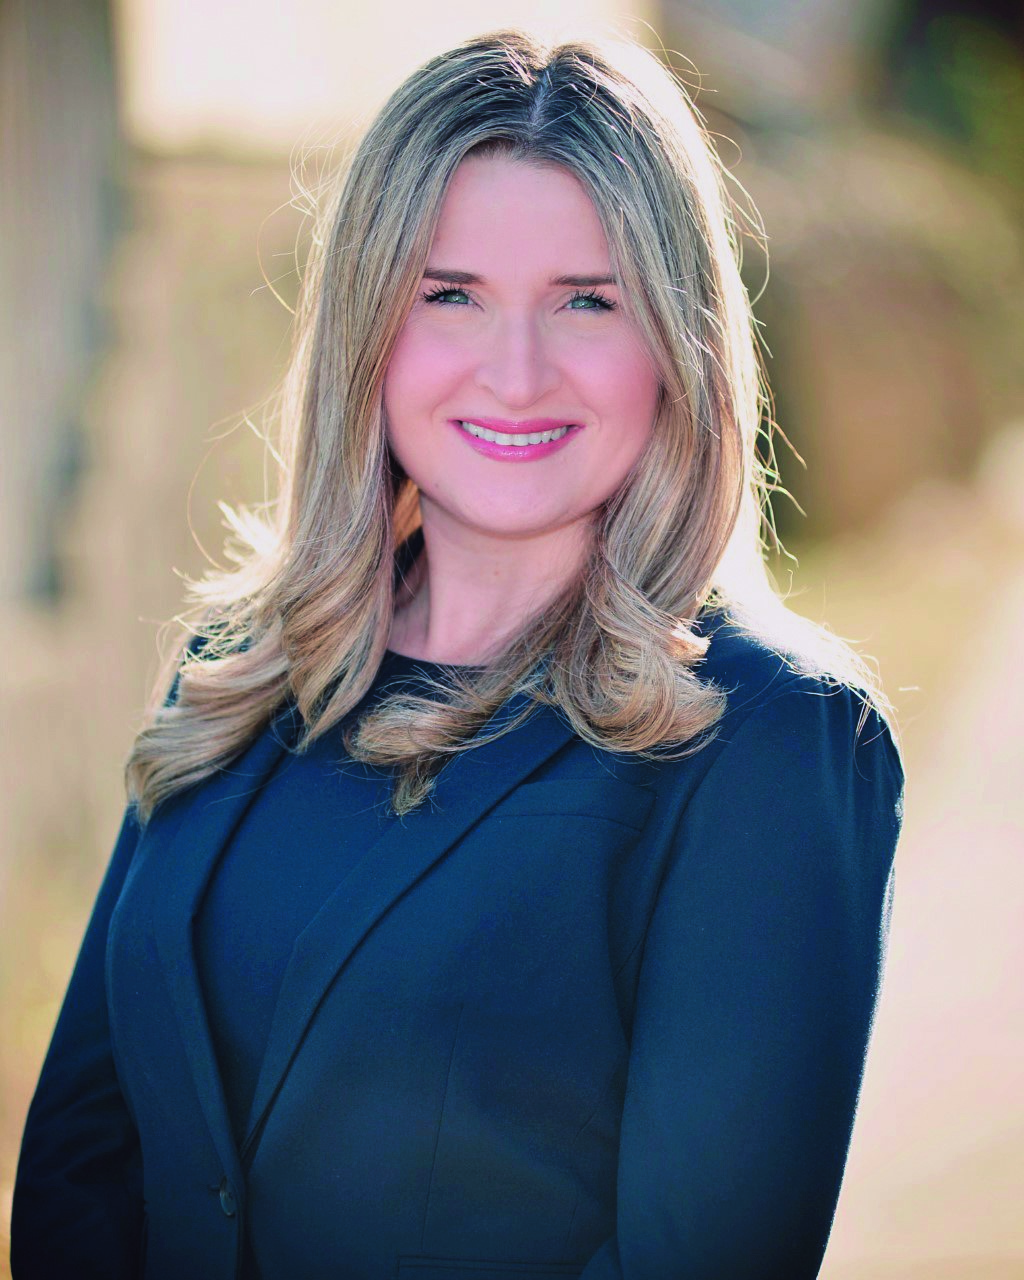 Qualifications - Having spent nearly the past decade at the NYS Supreme Court Appellate Division, most recently as a Principal Appellate Attorney, Elena has garnered significant experience.Learn more about Elena's impressive career.